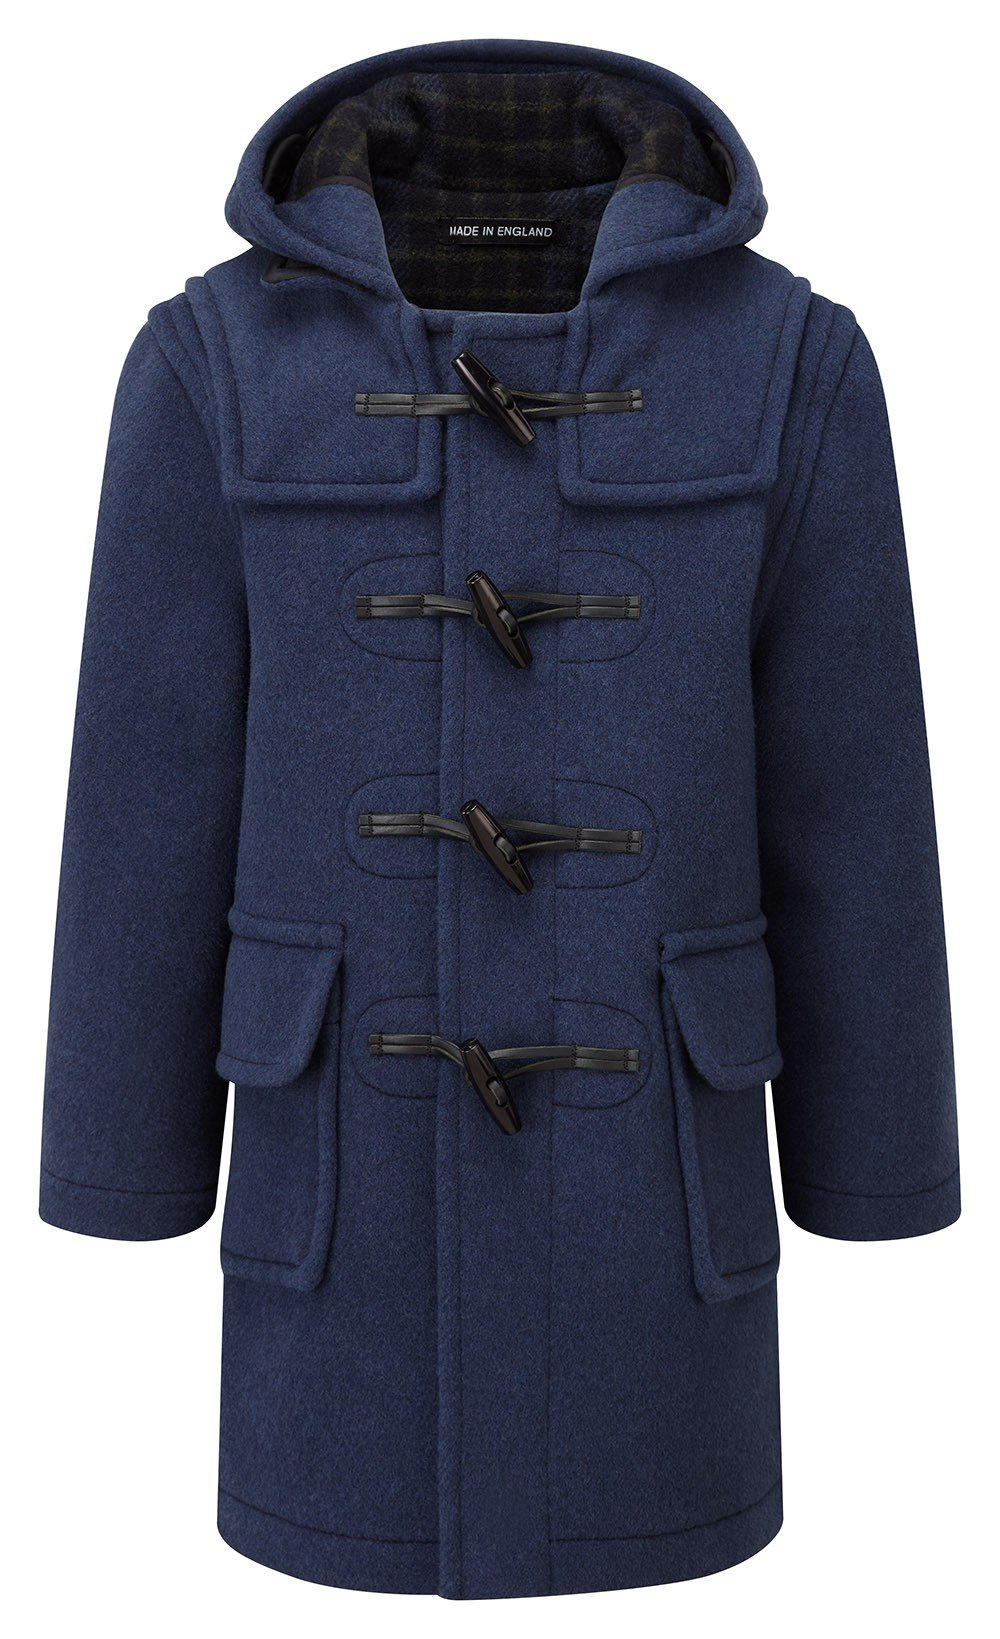 Kids Classic Duffle Coat (Toggle Coat) in Indigo ( 14-16Y )